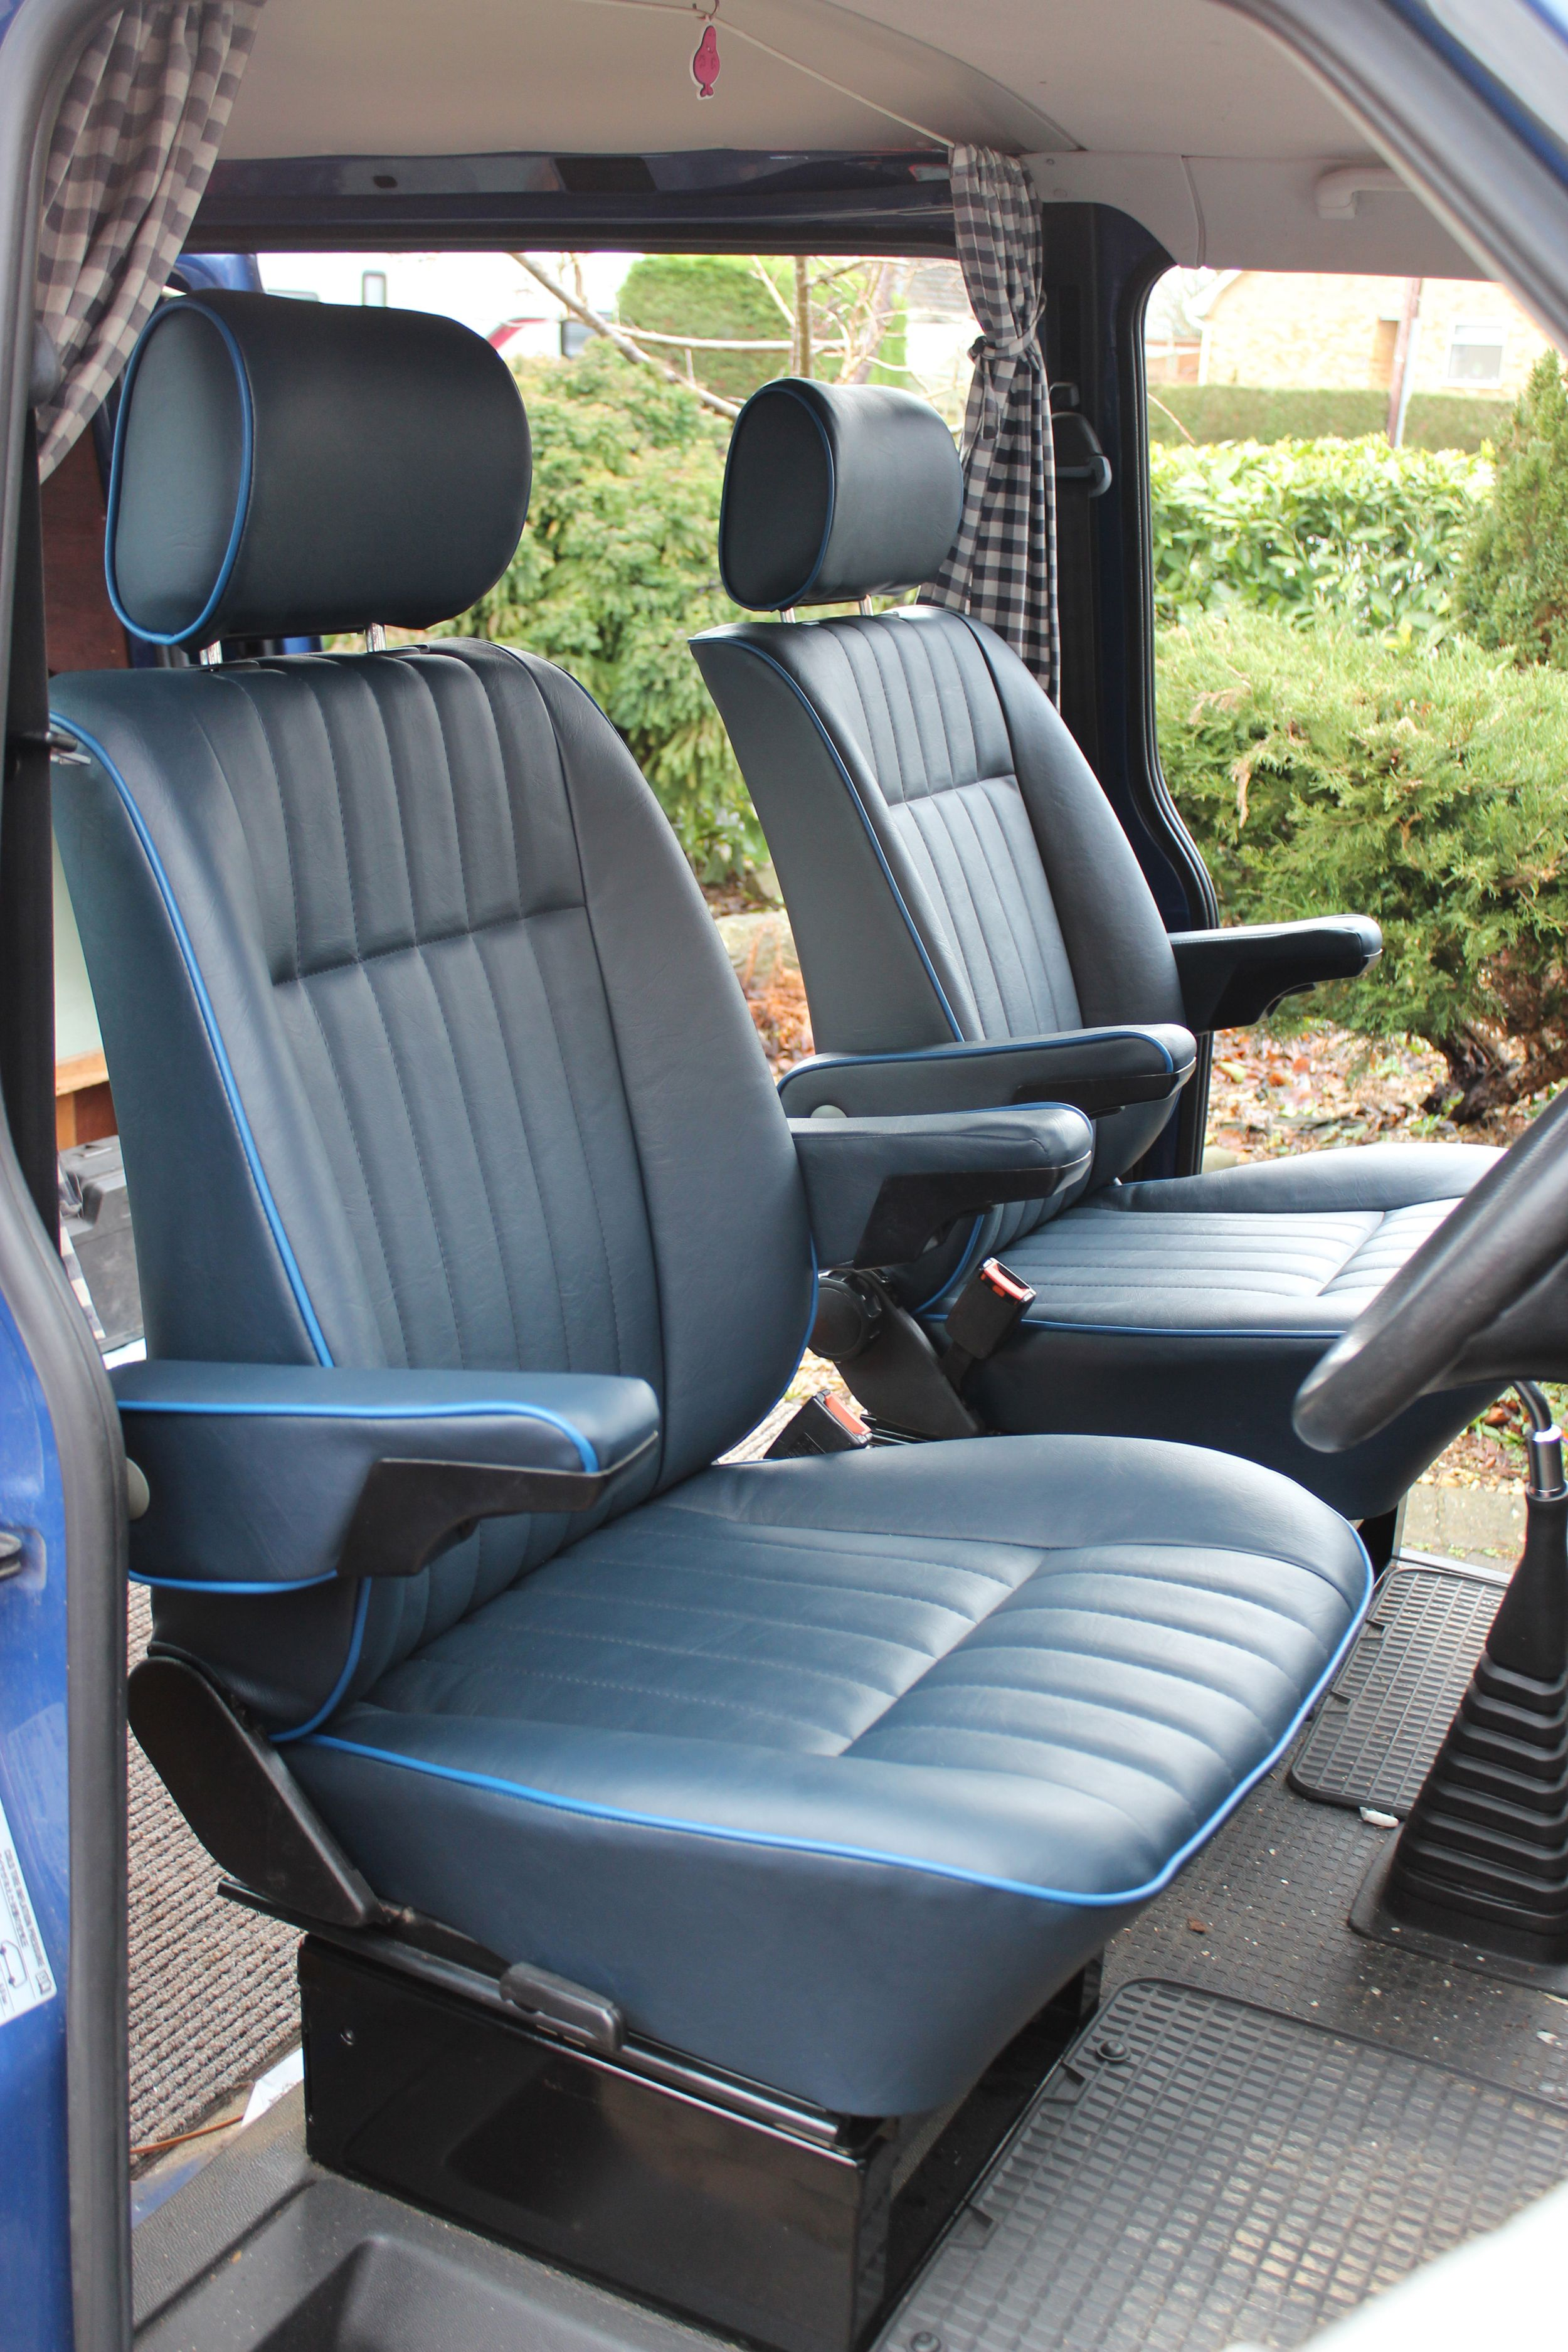 vw t4 caravelle captain 39 s chairs in the retro pleat style. Black Bedroom Furniture Sets. Home Design Ideas